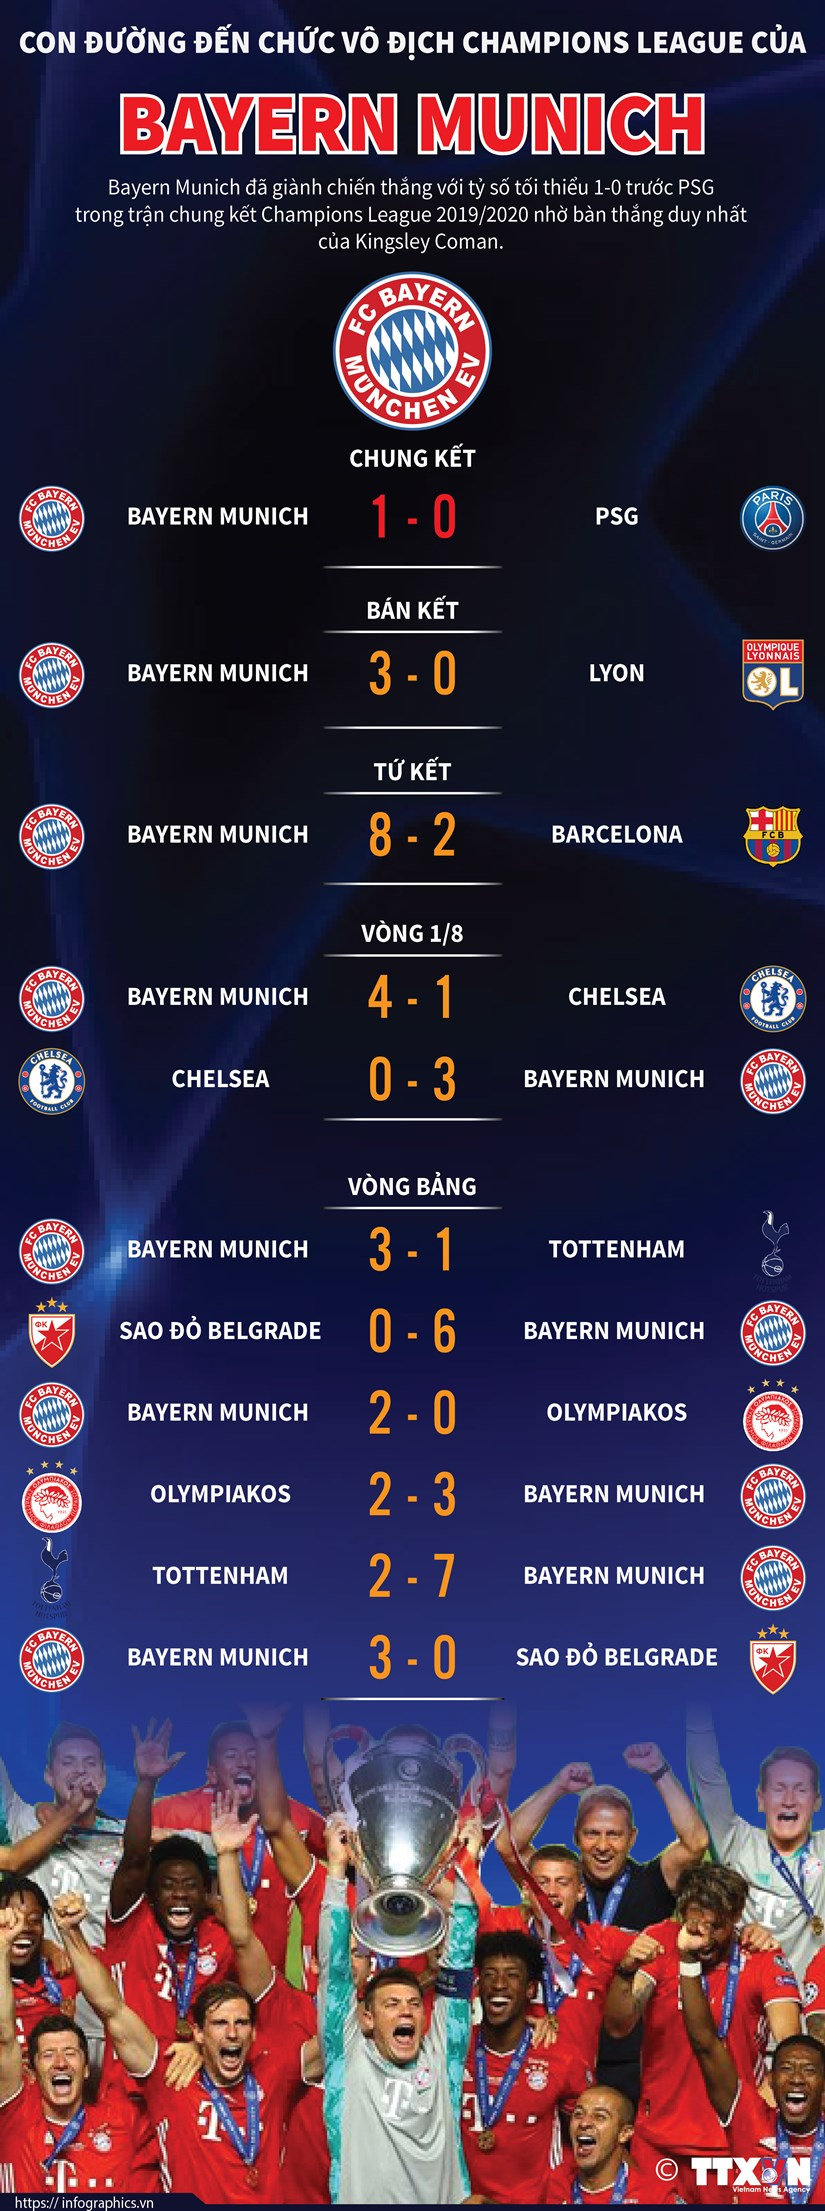 [Infographics] Con duong vo dich Champions League cua Bayern Munich hinh anh 1